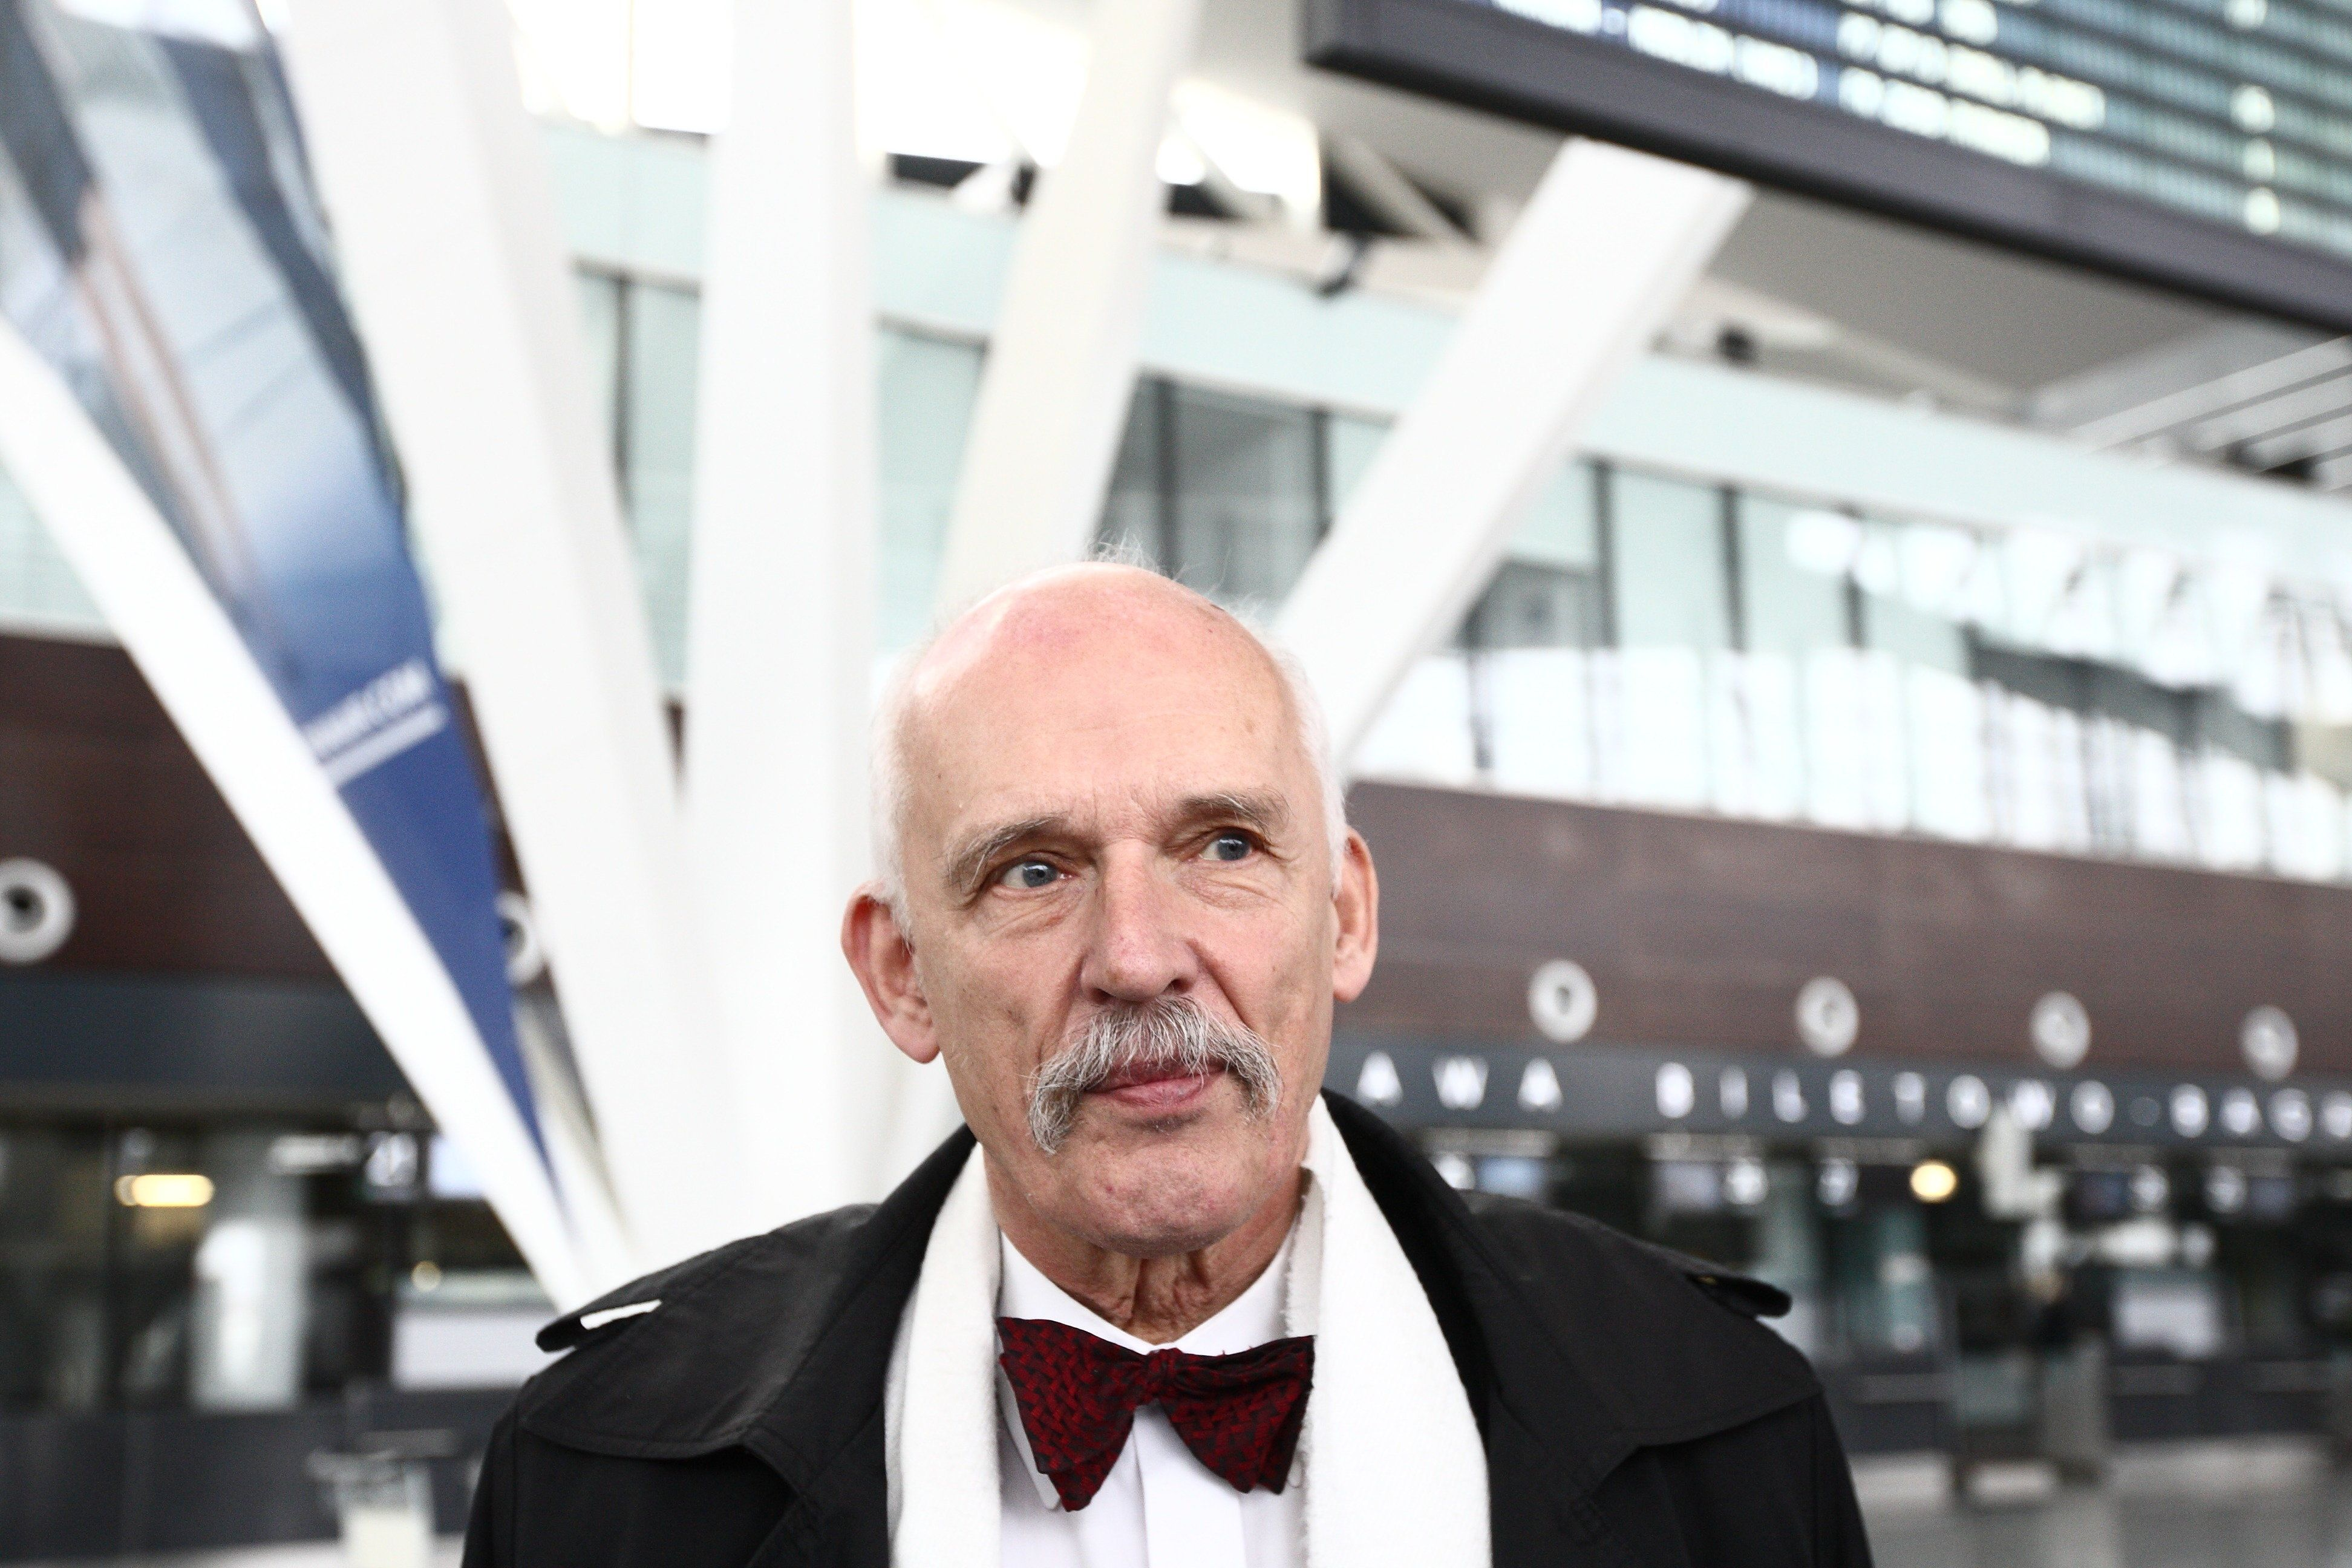 Gdansk, Poland 20th, March 2015 Lech Walesa Airport in Gdansk. Far right politician and candidate for President of Poland Janusz Korwin Mikke press conference at the Gdansk airport. Mikke continues his presidential campaign traveling around Poland on board an aeroplane named 'Air Korwin One'. (Photo by Michal Fludra/NurPhoto) (Photo by NurPhoto/NurPhoto via Getty Images)